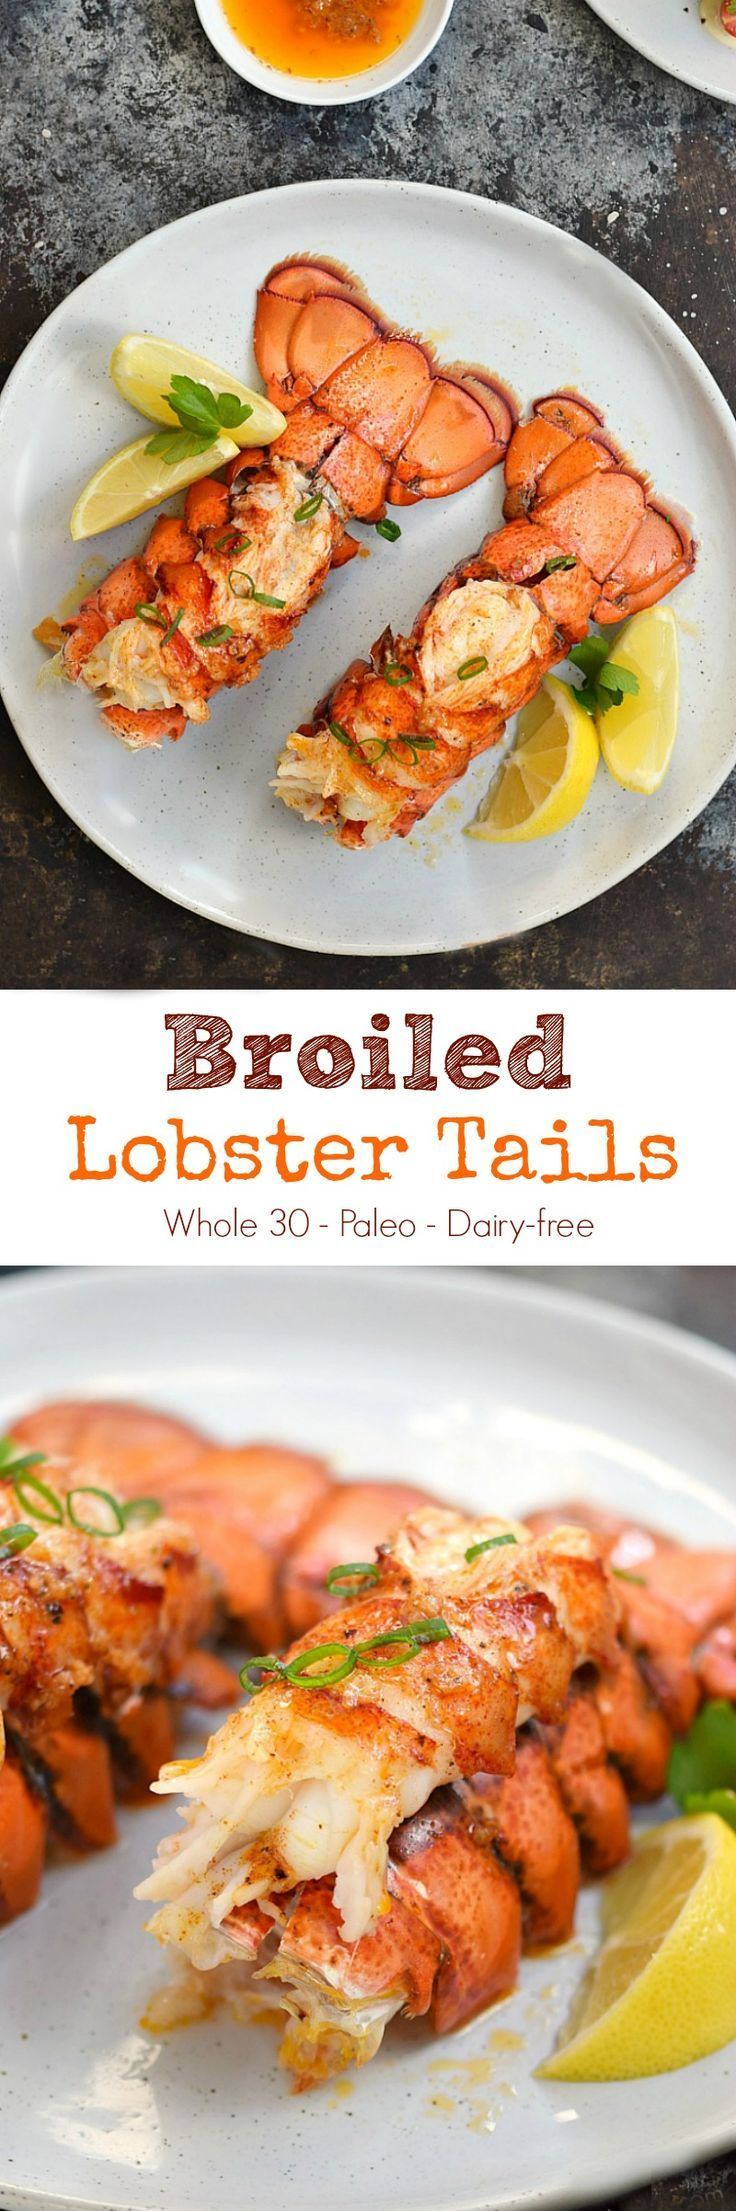 Make date night extra special with Broiled Lobster Tails that are served with garlic butter on the side. They're ready in minutes and truly decadent | http://cookingwithcurls.com